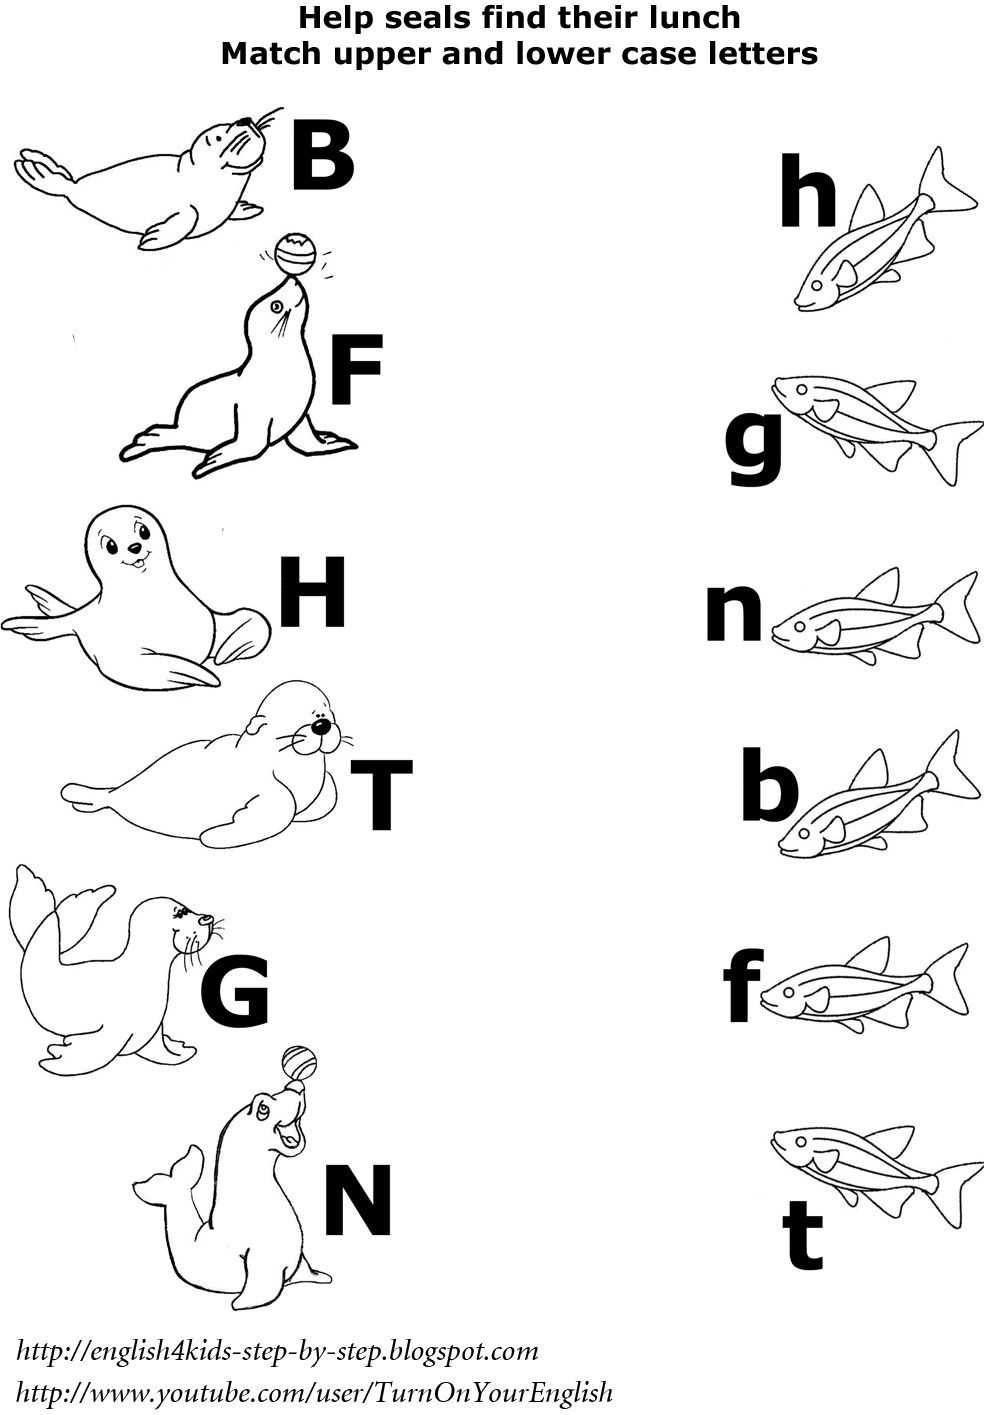 arctic animals matching upper and lower case letters worksheet ...